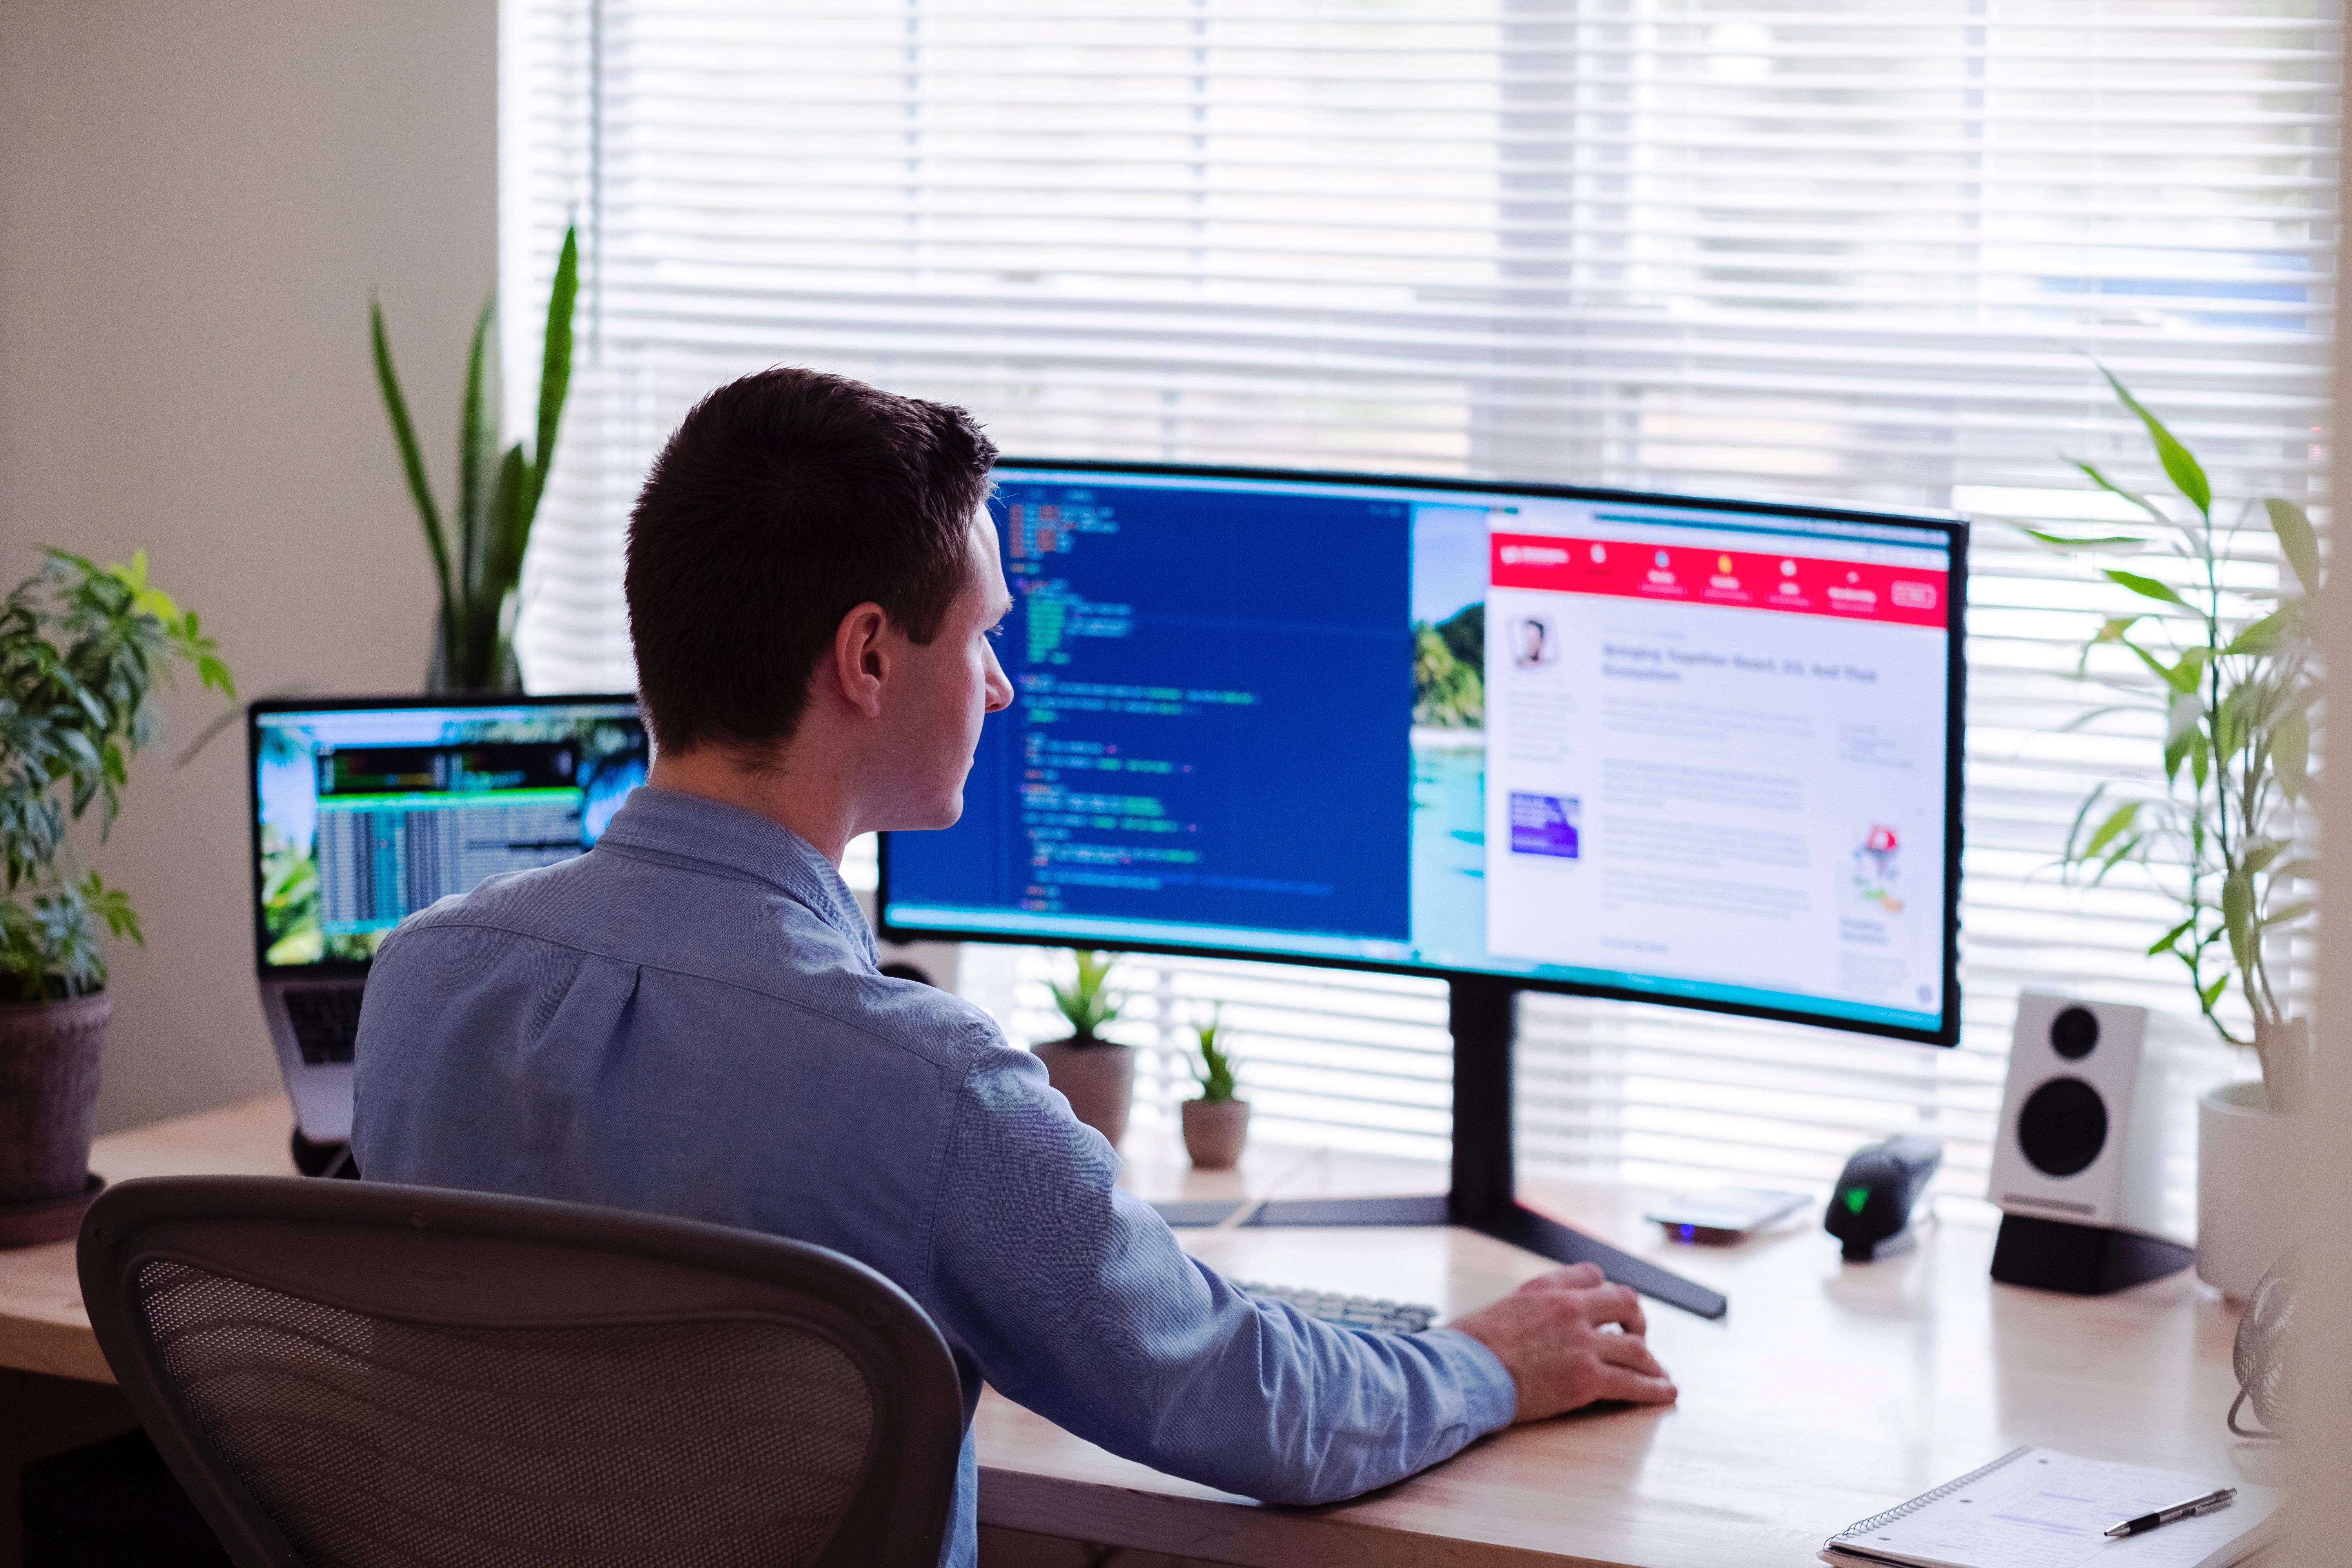 Man working in front of monitors